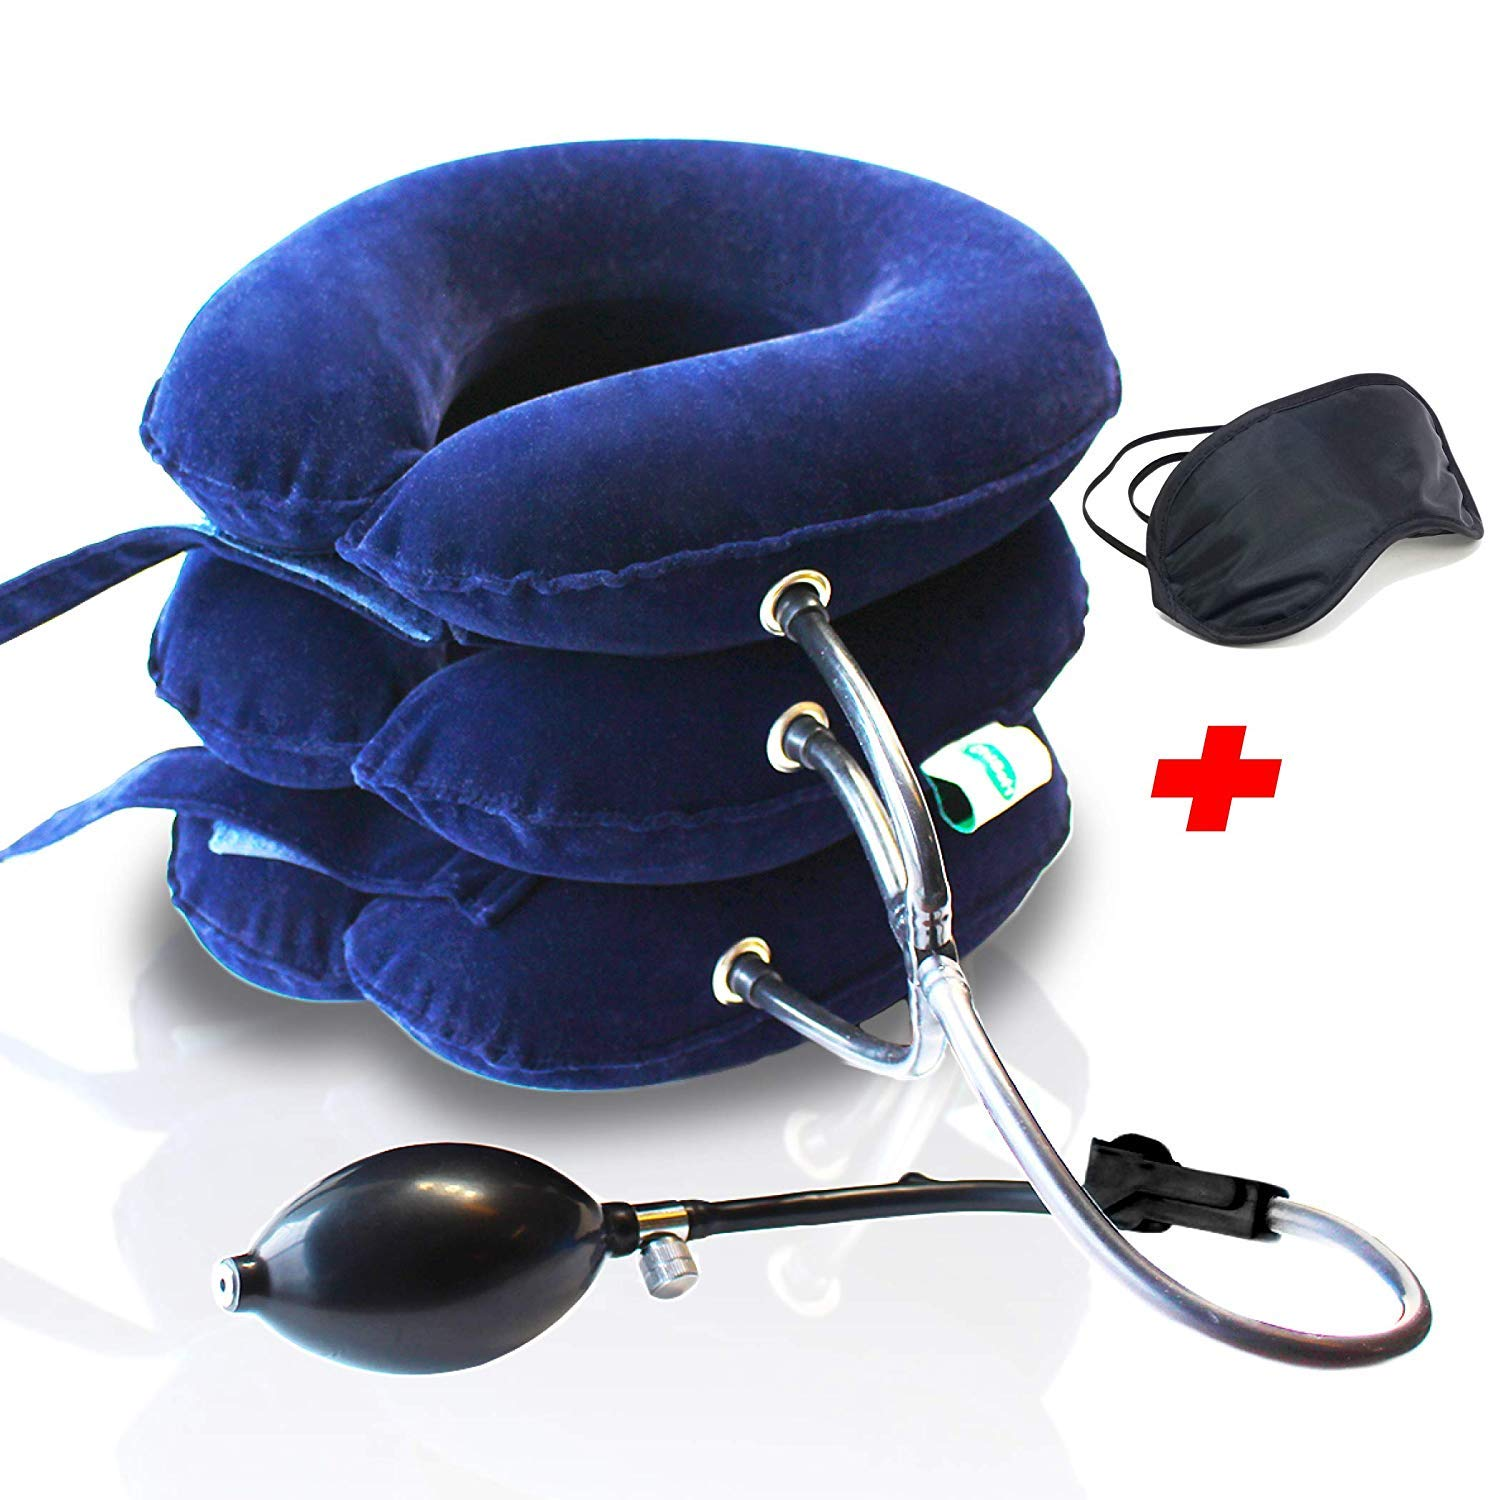 Neck Traction Device No1 Doctors Recommended CHISOFT Unique Safety Detachable Connection, (2nd Edition) Cervical Neck Stretcher + Eye Mask, Corrects Posture, Helps Neck Pain